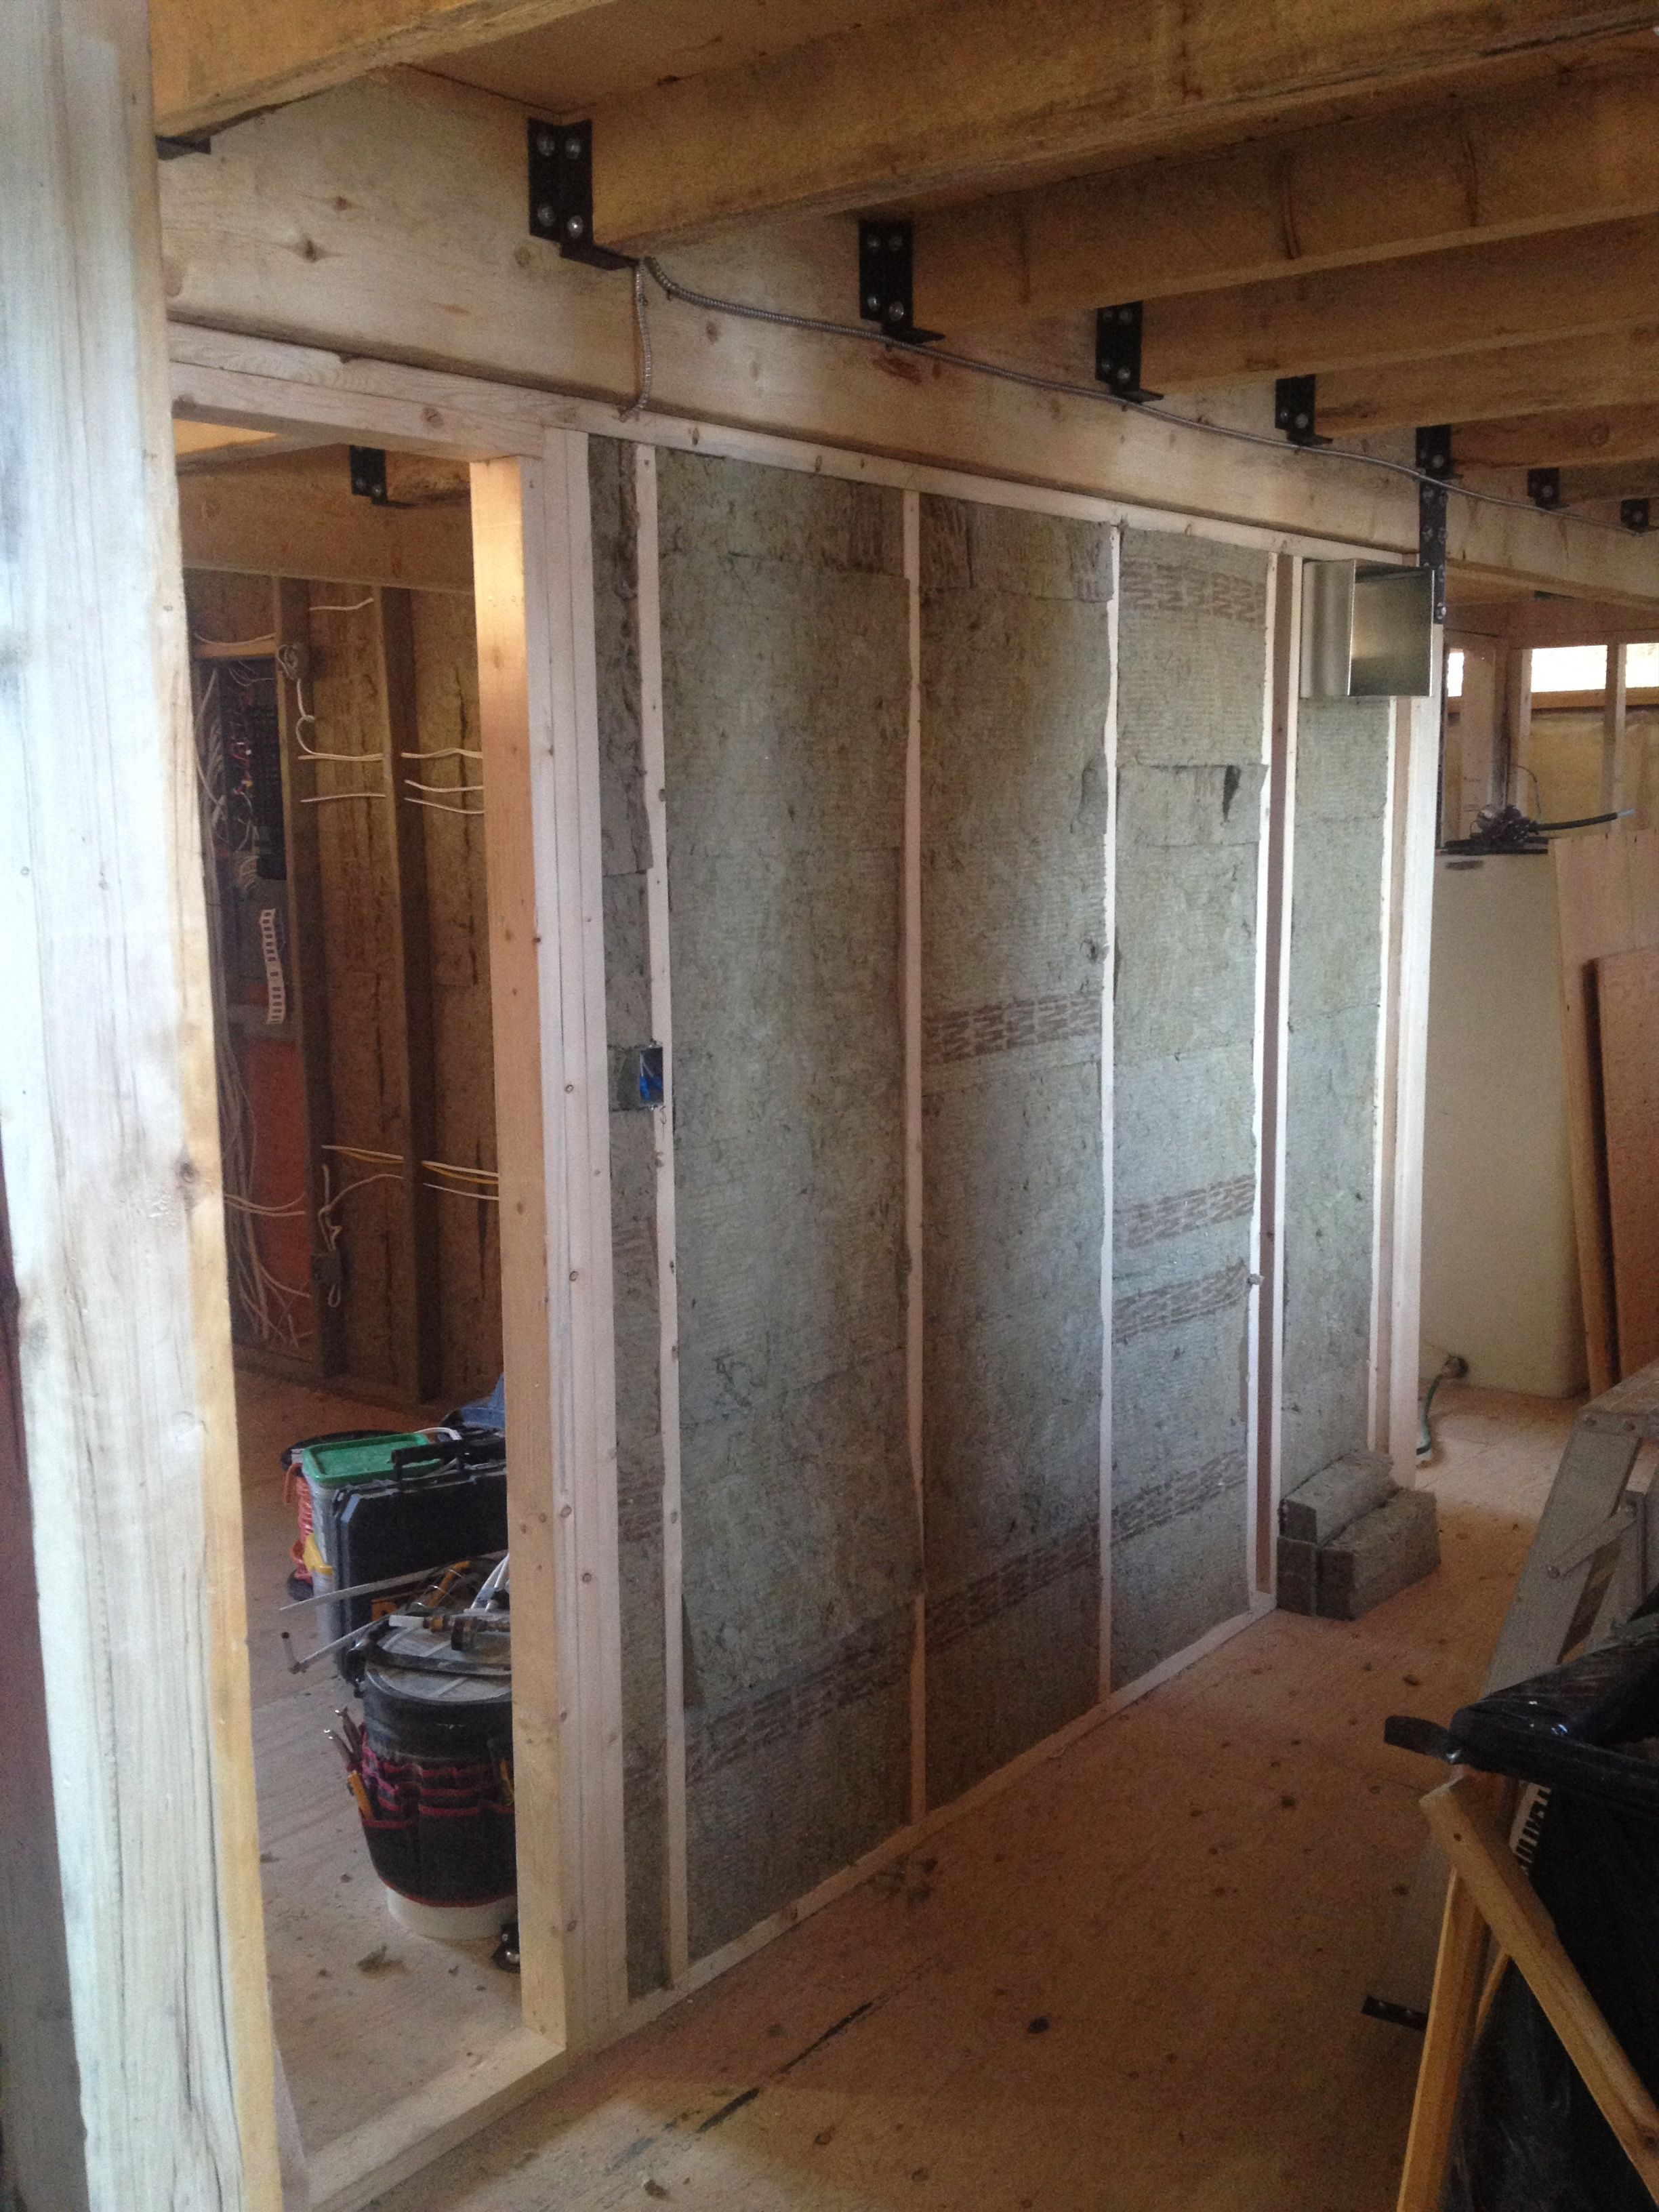 Interior Walls Insulated With Fire Rated Insulation Around Master Bedroom,  Bathroom And Furnace Room For